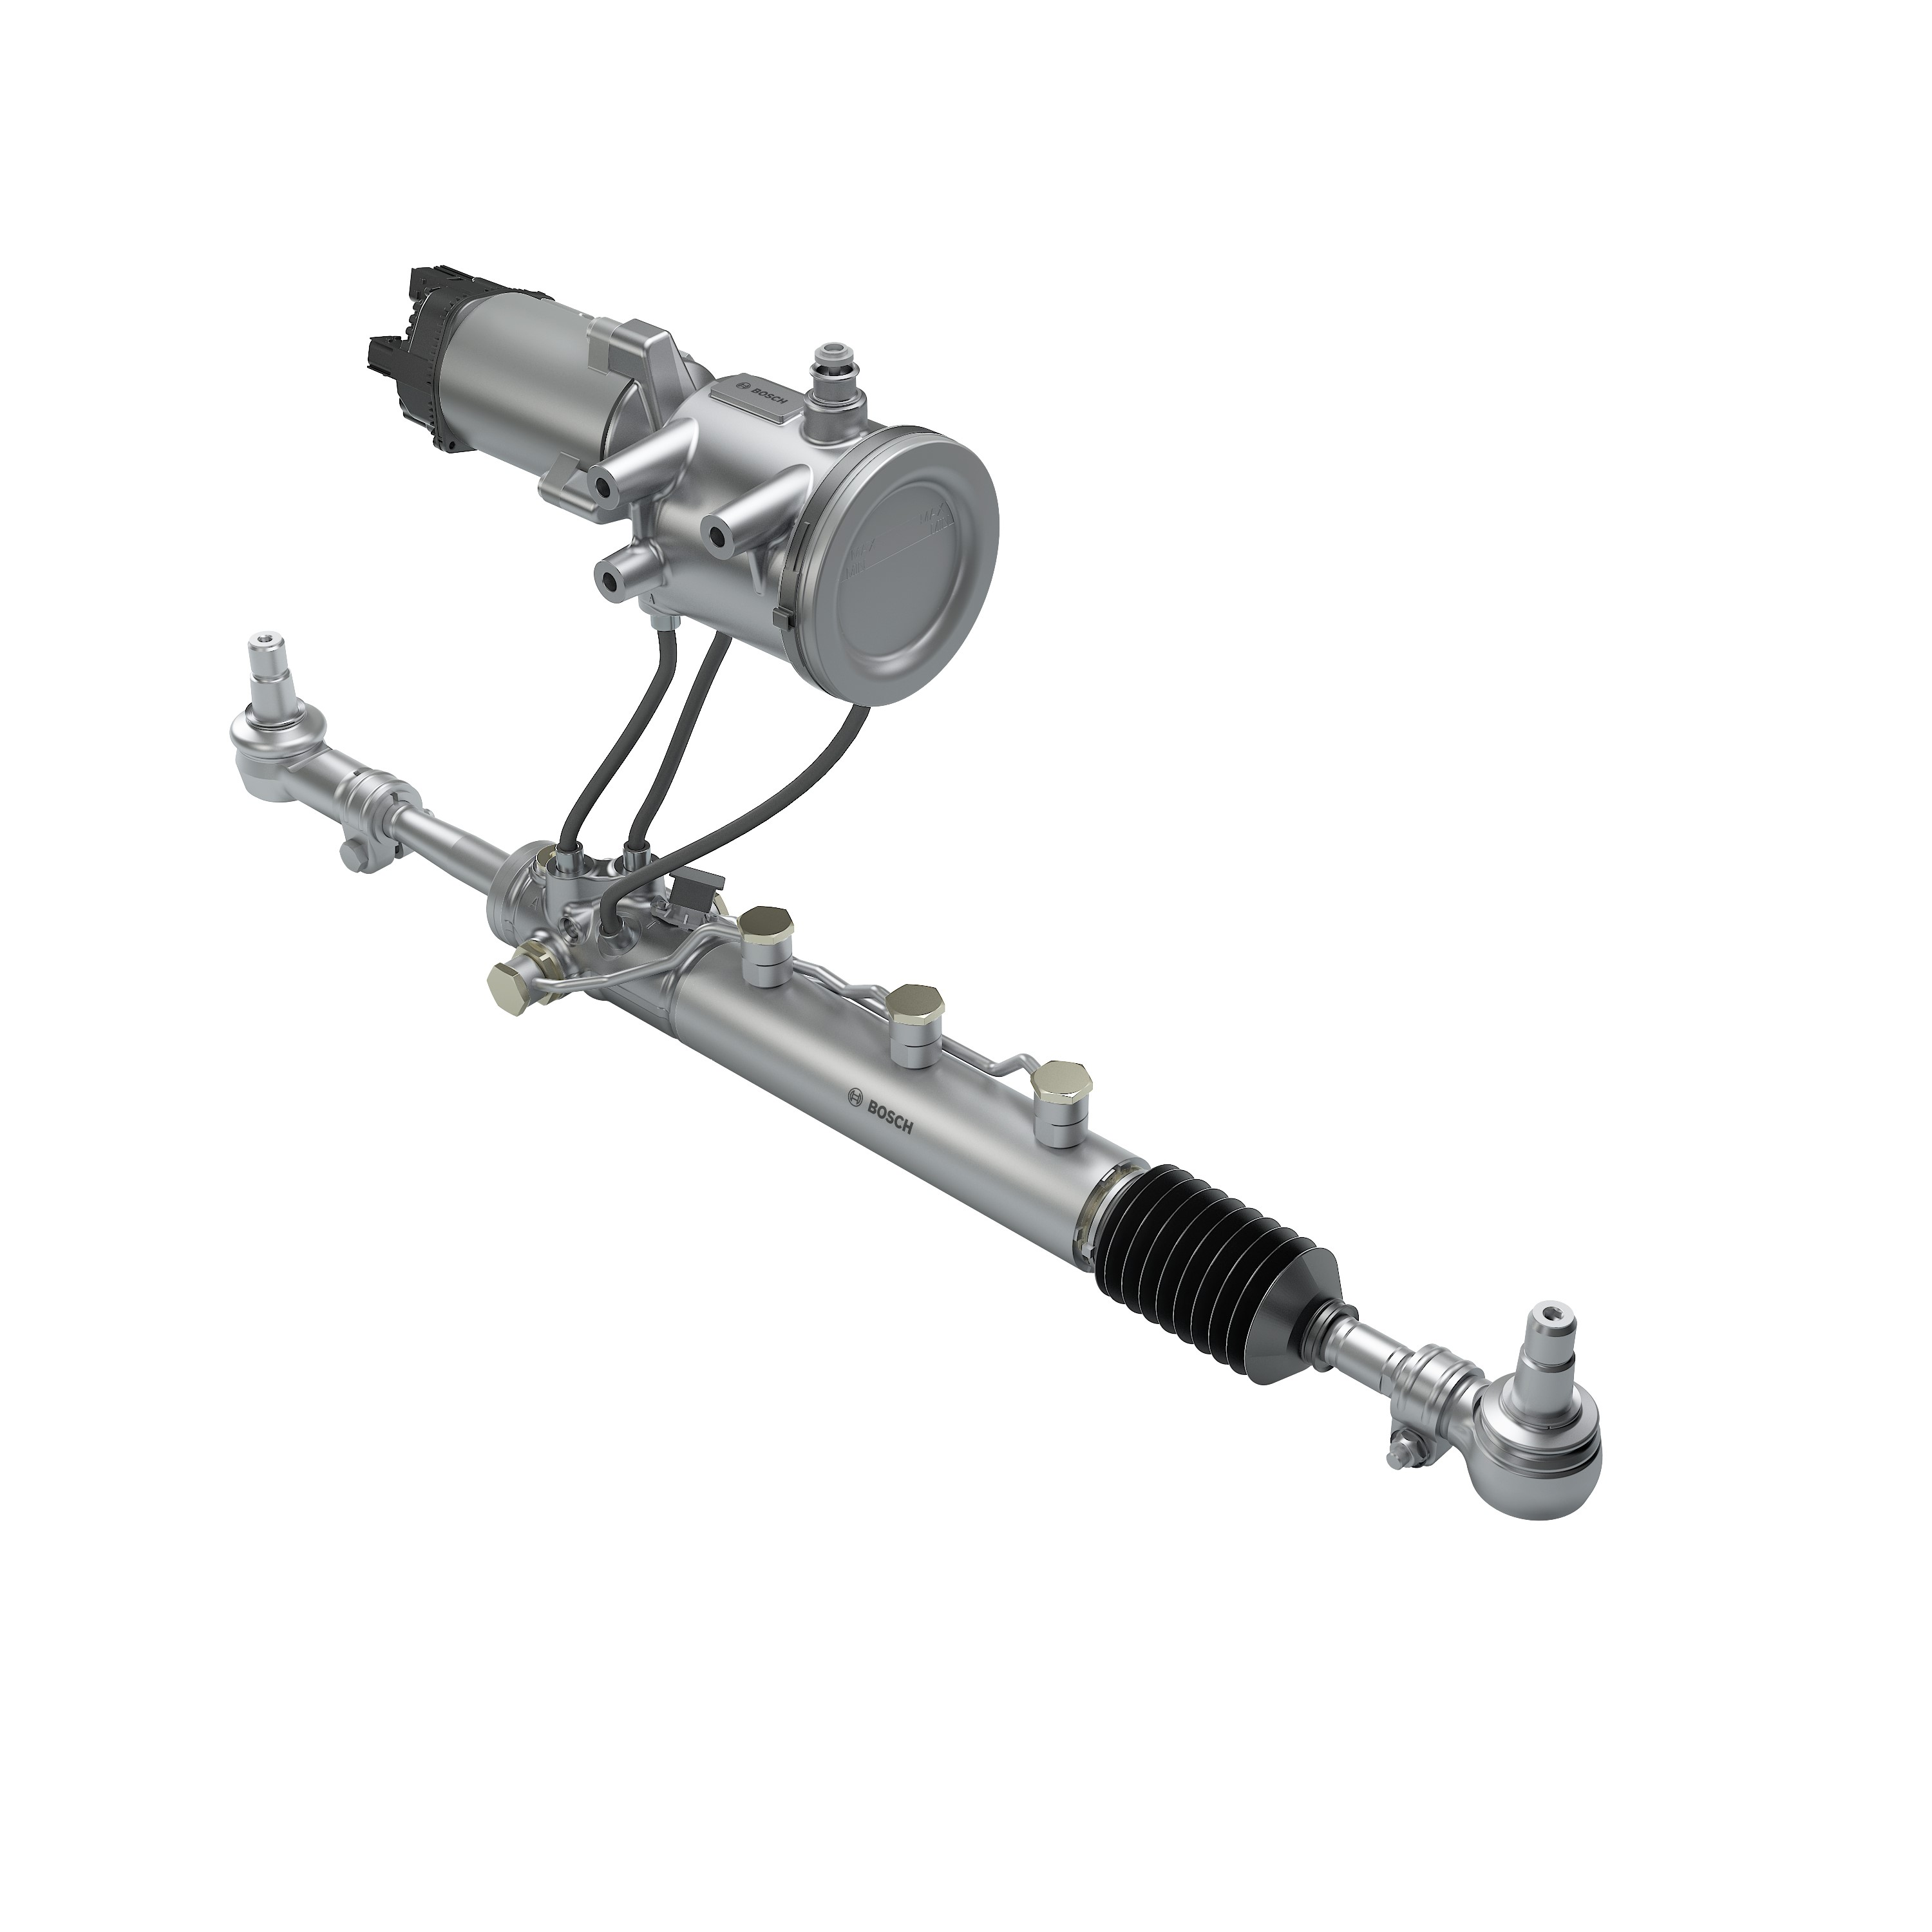 Rear Axle Steering system